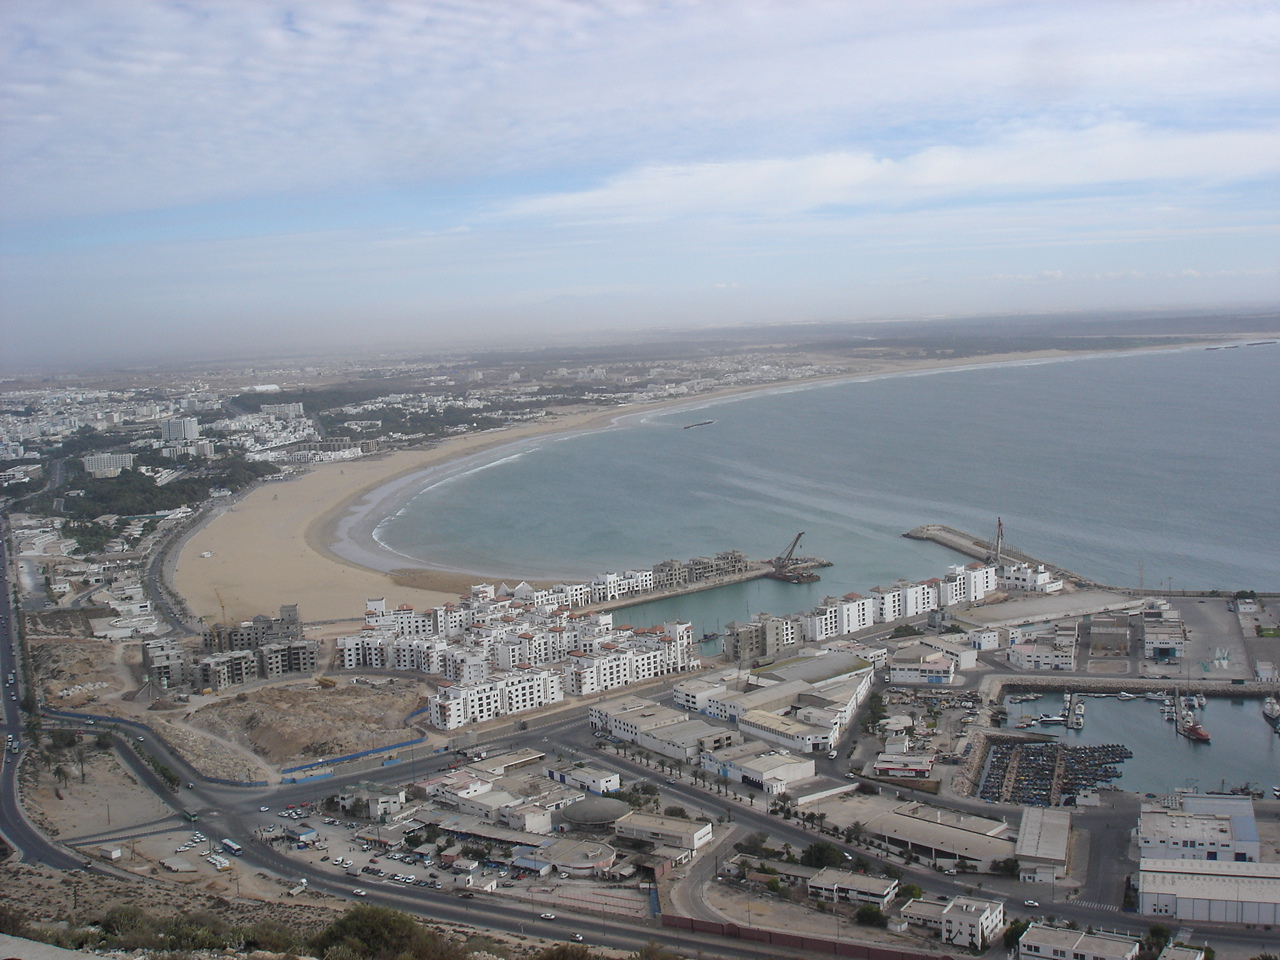 Agadir, Morocco, Agadir beach, Travel destination